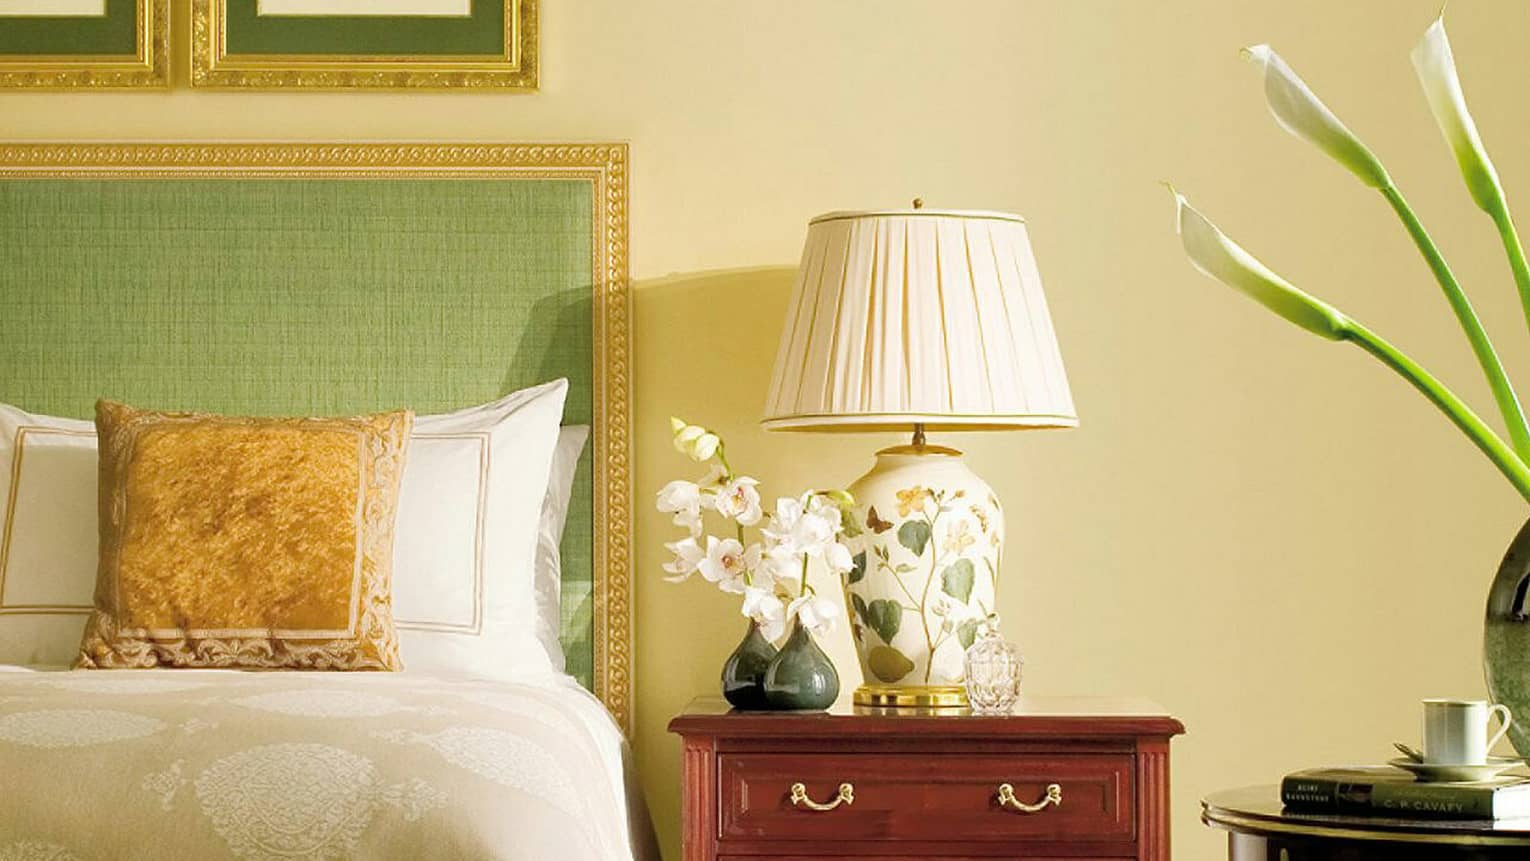 Close-up of Superior City-View Room bed with green headboard, gold frame and accent pillow, bedside lamp and orchid